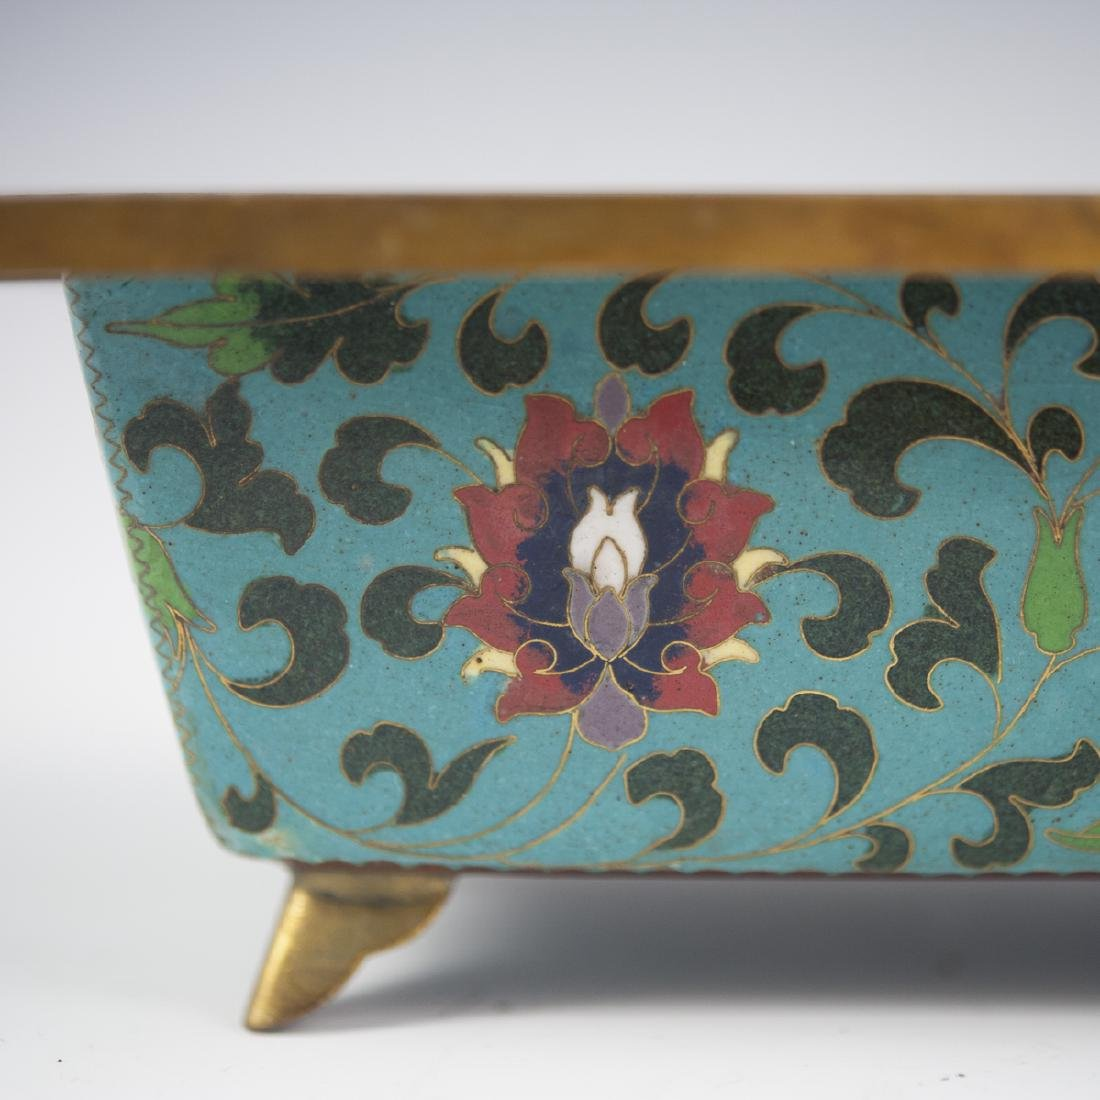 Chinese Cloisonne Enameled Footed Planter - 5